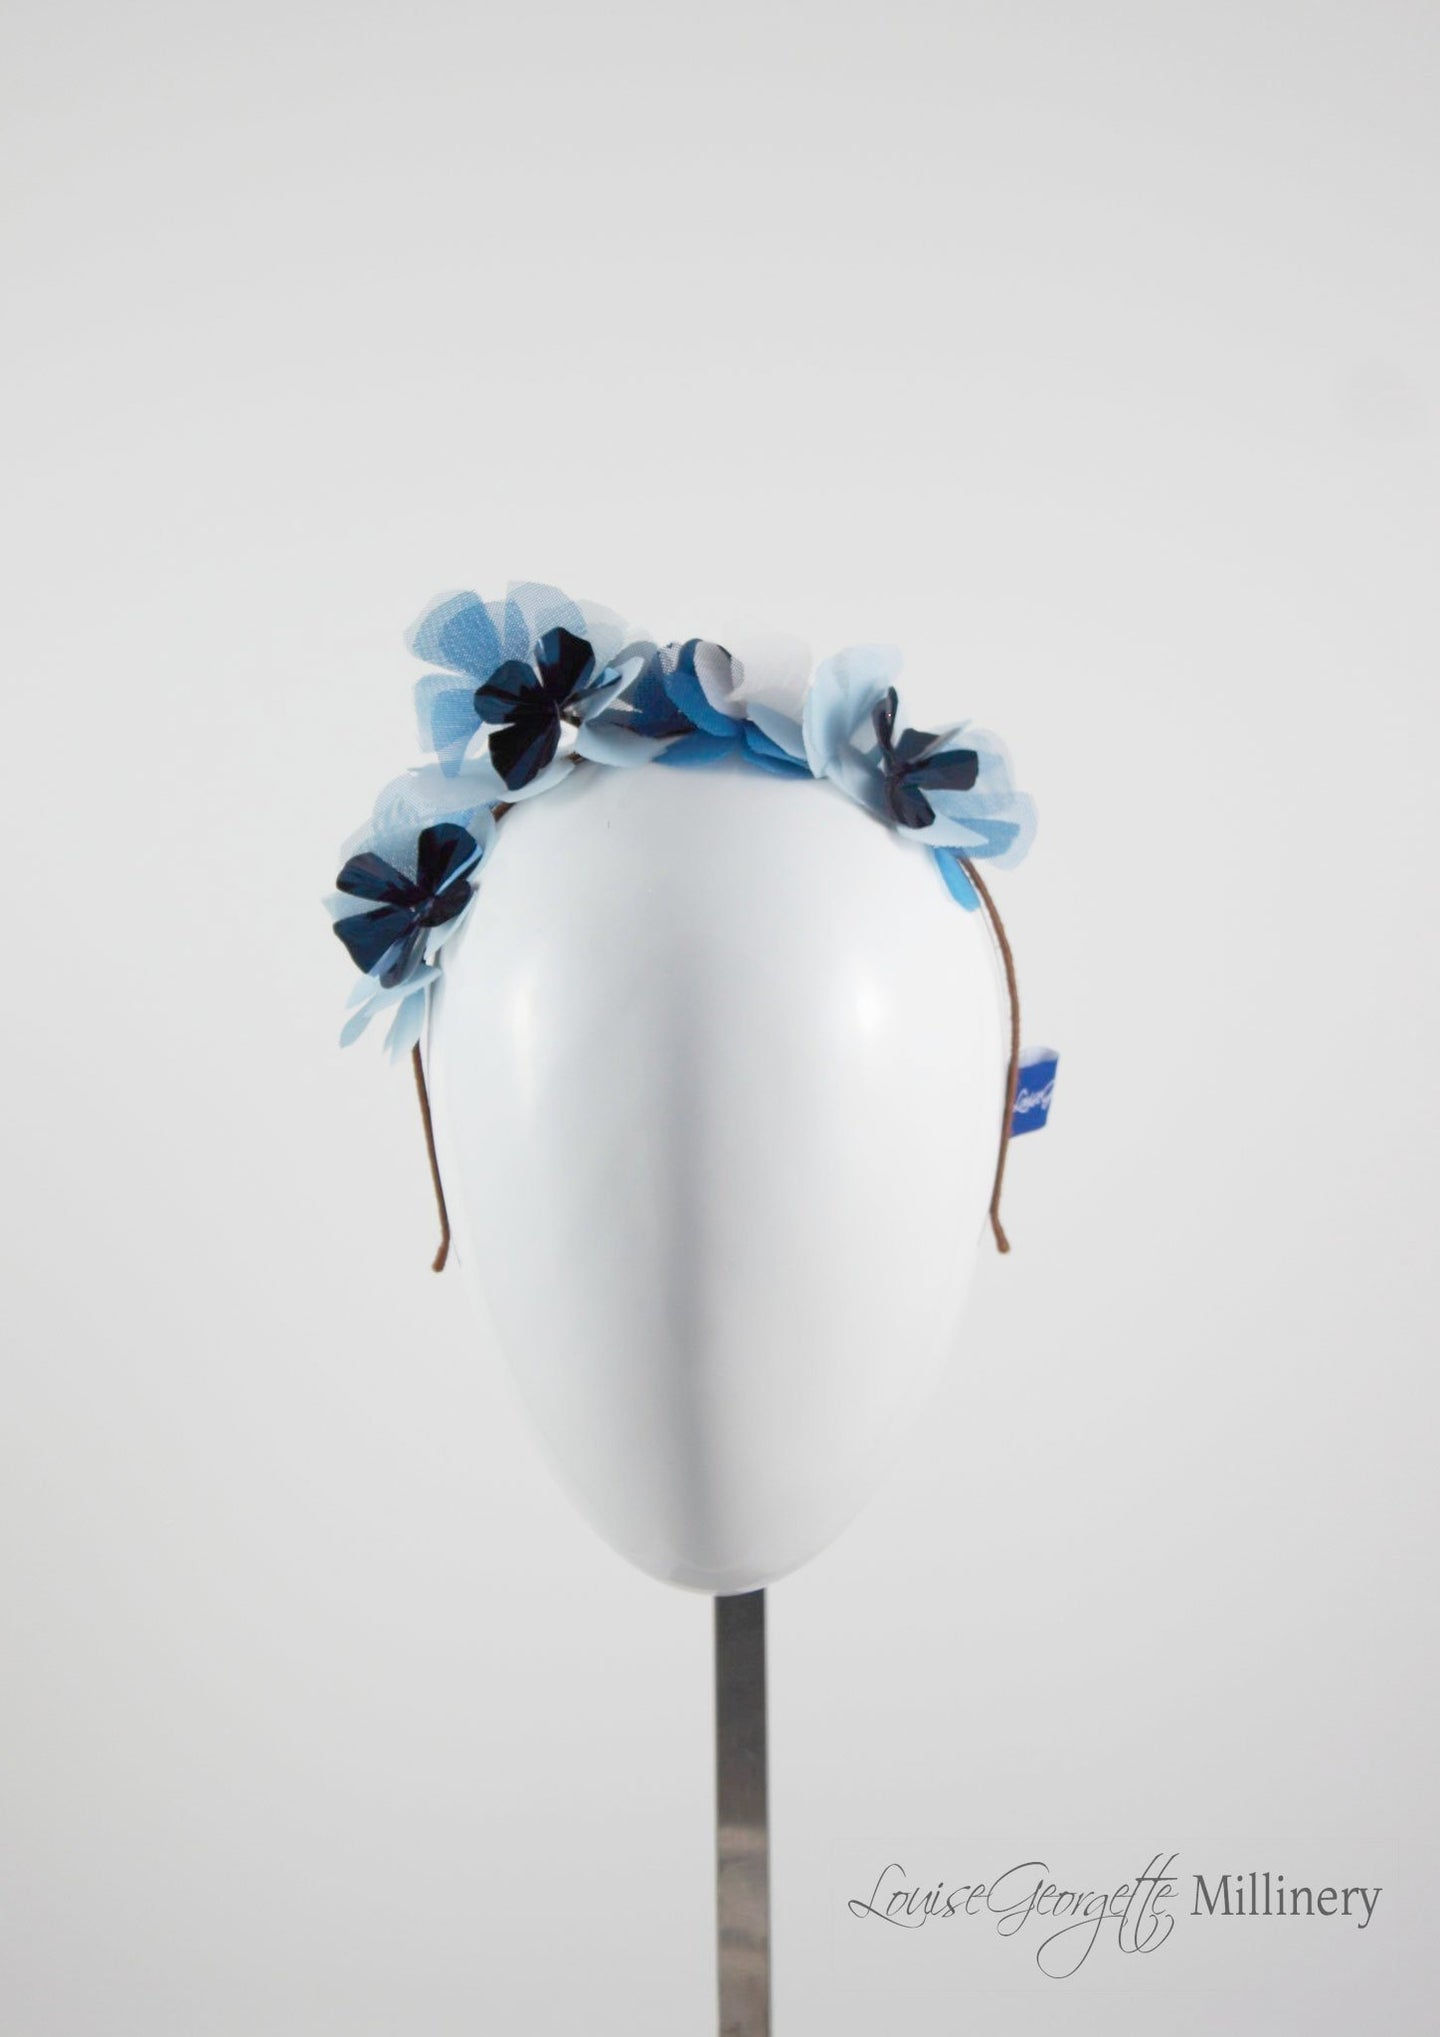 Metallic Flower Headband in Pale pink and dark blue